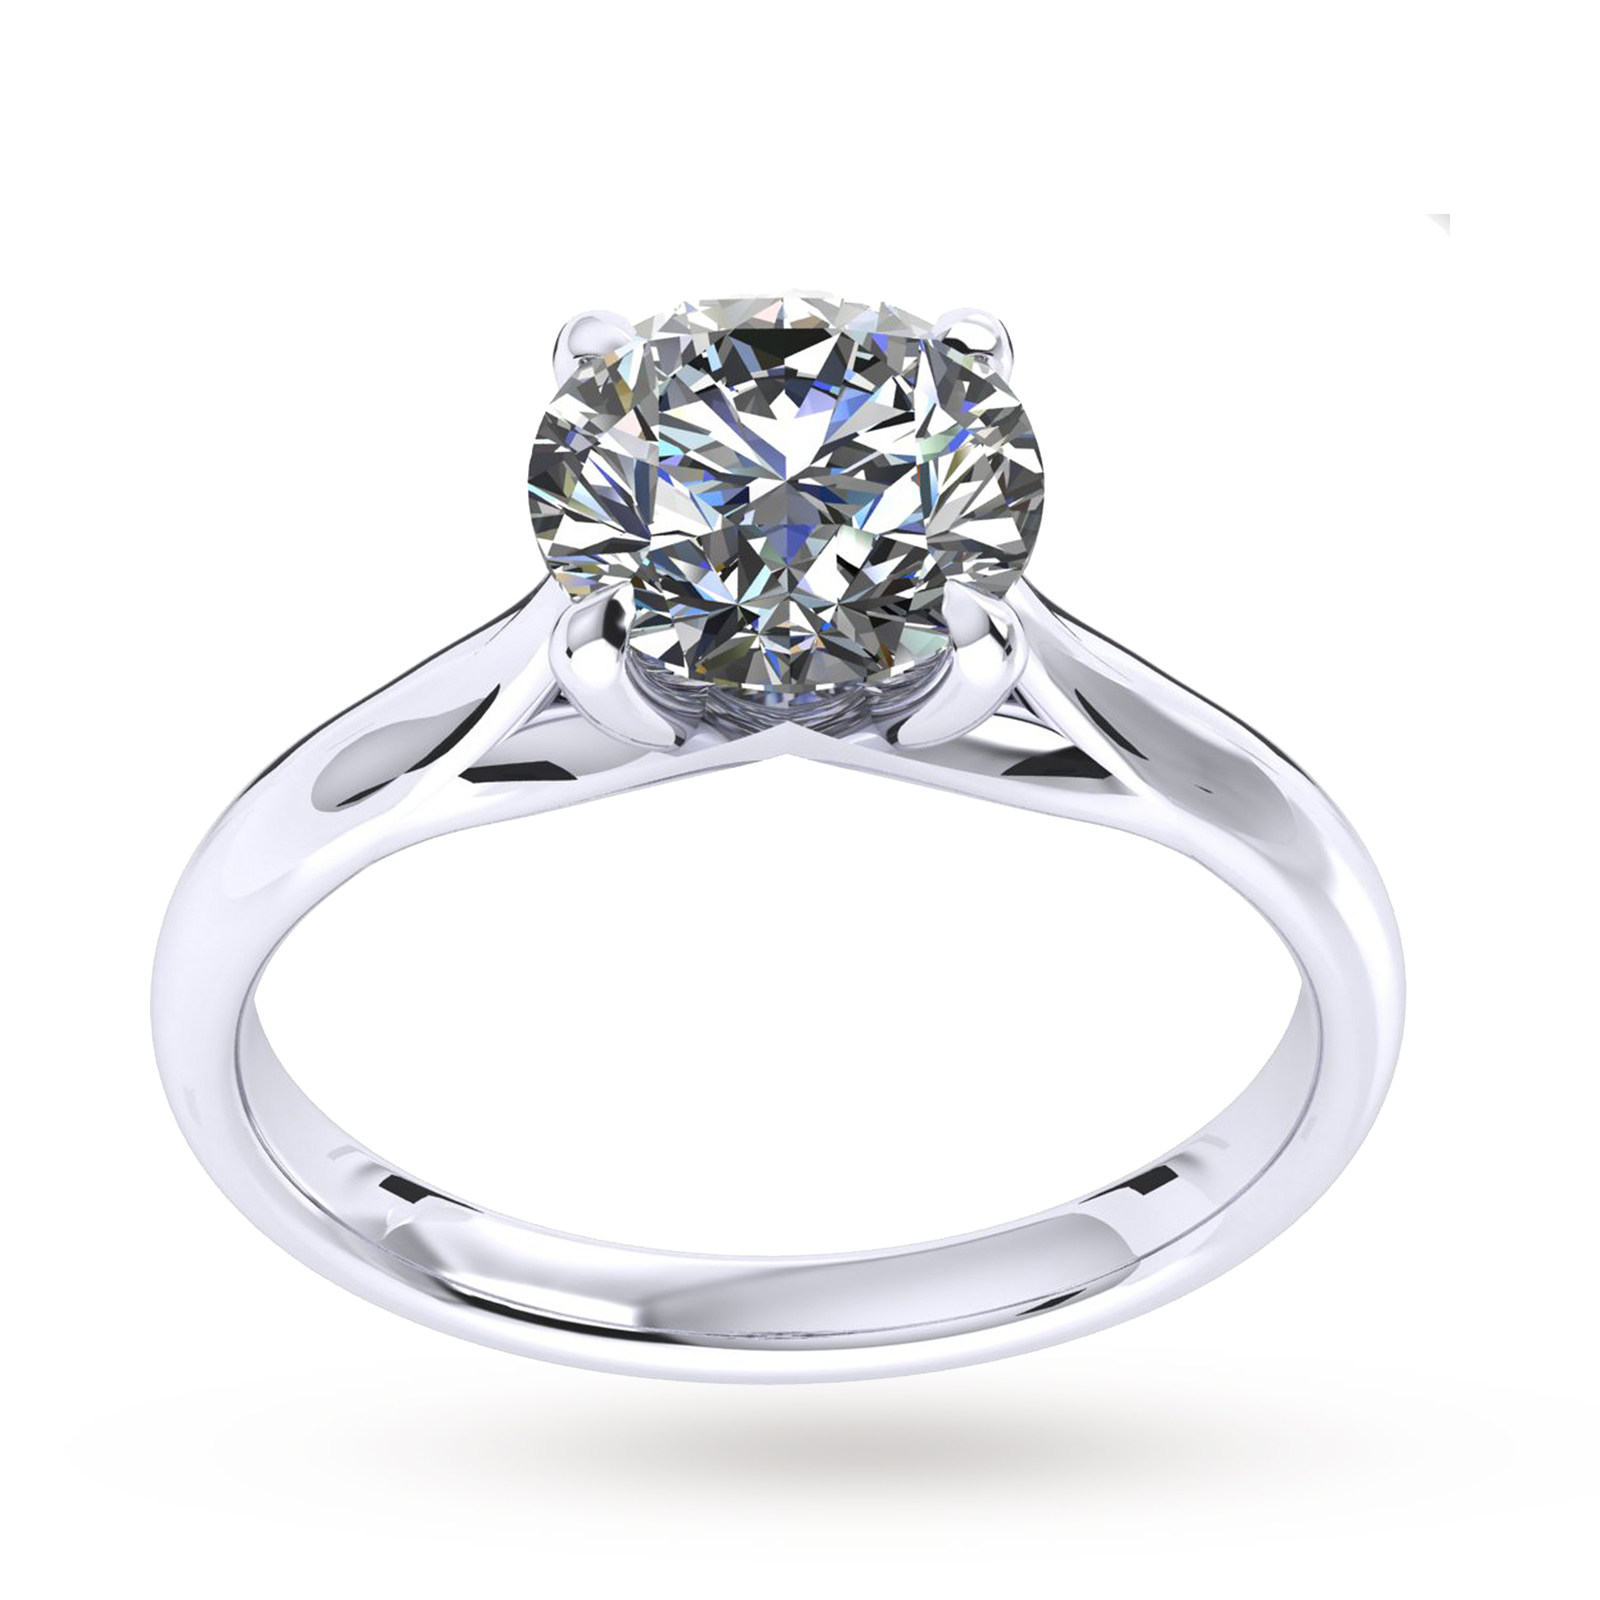 Ena Harkness Engagement Ring 0.25 Carat - Ring Size J